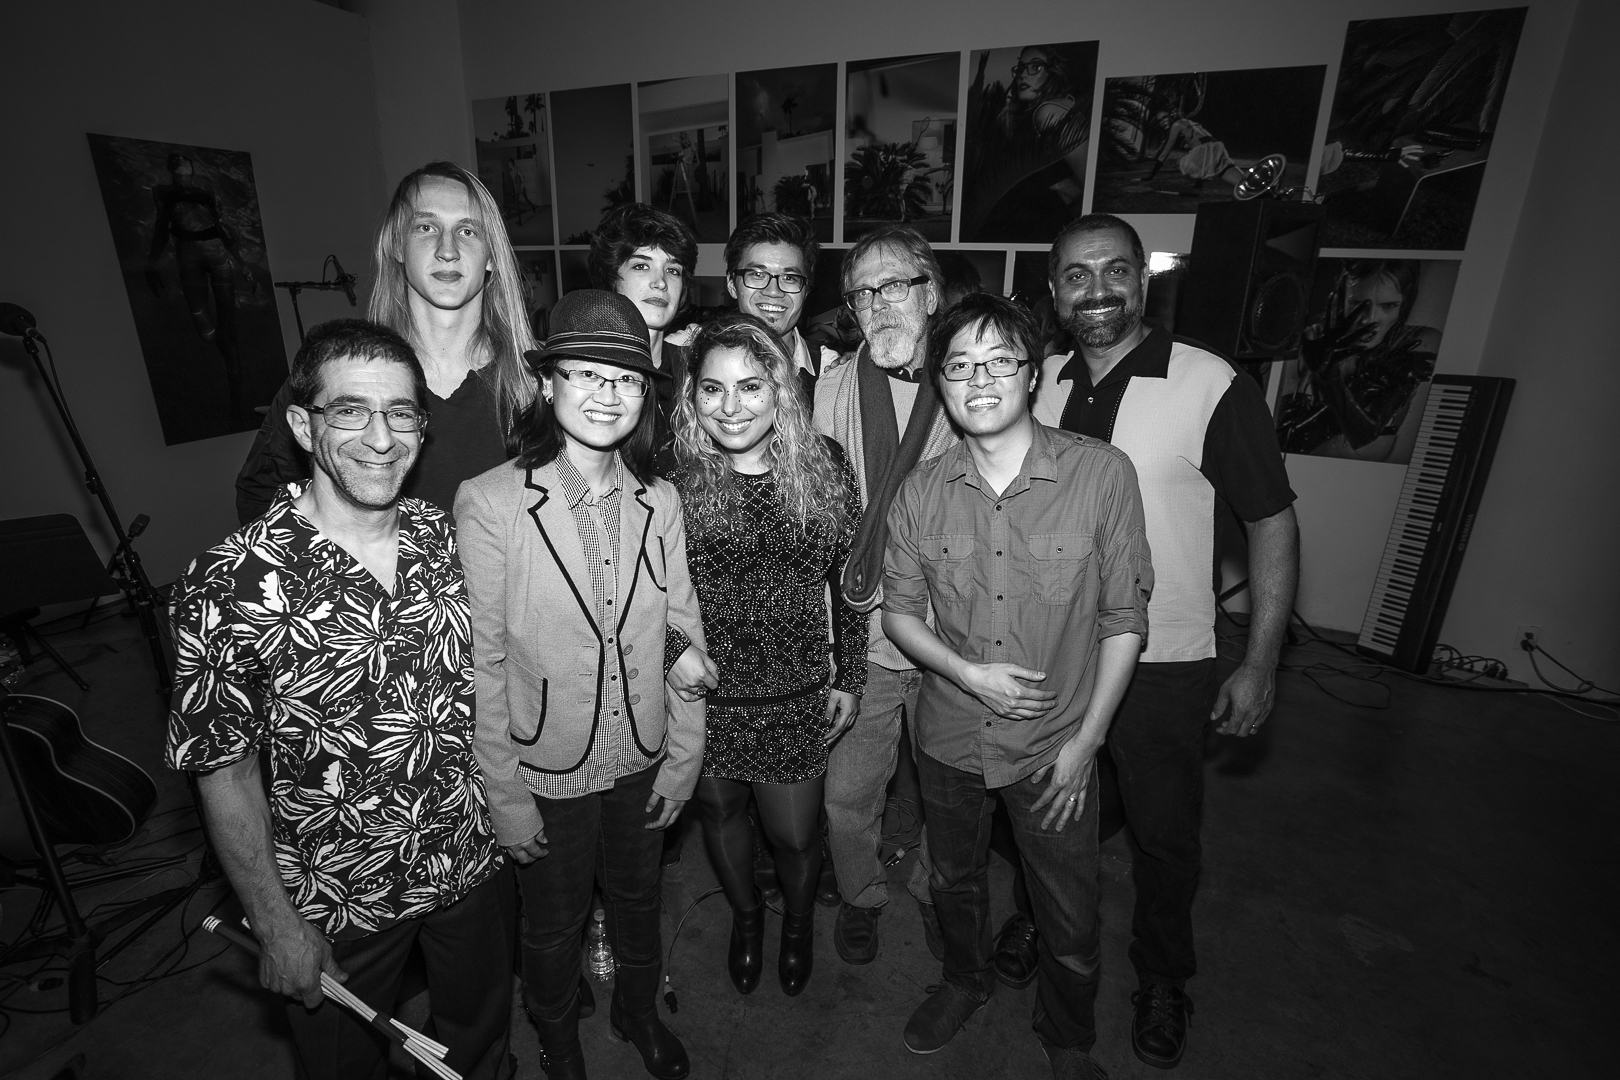 The Proven Guilty [Front: Paul Berolzheimer (drums), DJ DiipSilence, Emily Daccarett (vocals, lyricist), Ian Chen (violin, keys), Back: Adam Skeppar (guitar), Marie Weill (guitar, vocals), Myself (keys, composer), Ken Goerres (sound engineer) and Sumit Das (bass).